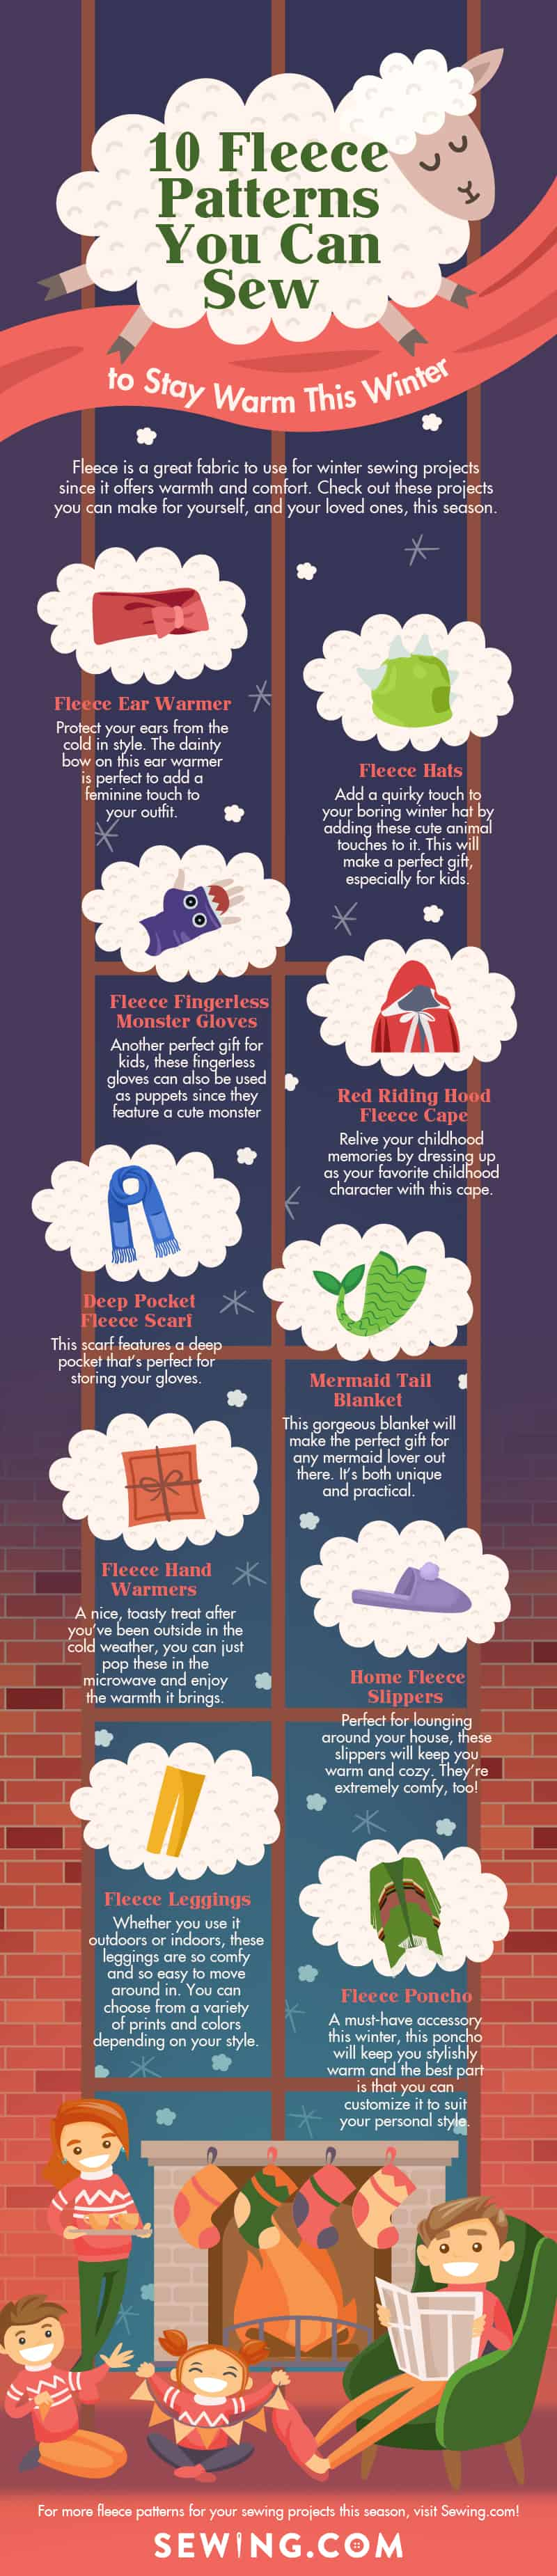 Fleece Patterns You Can Sew To Stay Warm This Winter | Infographic